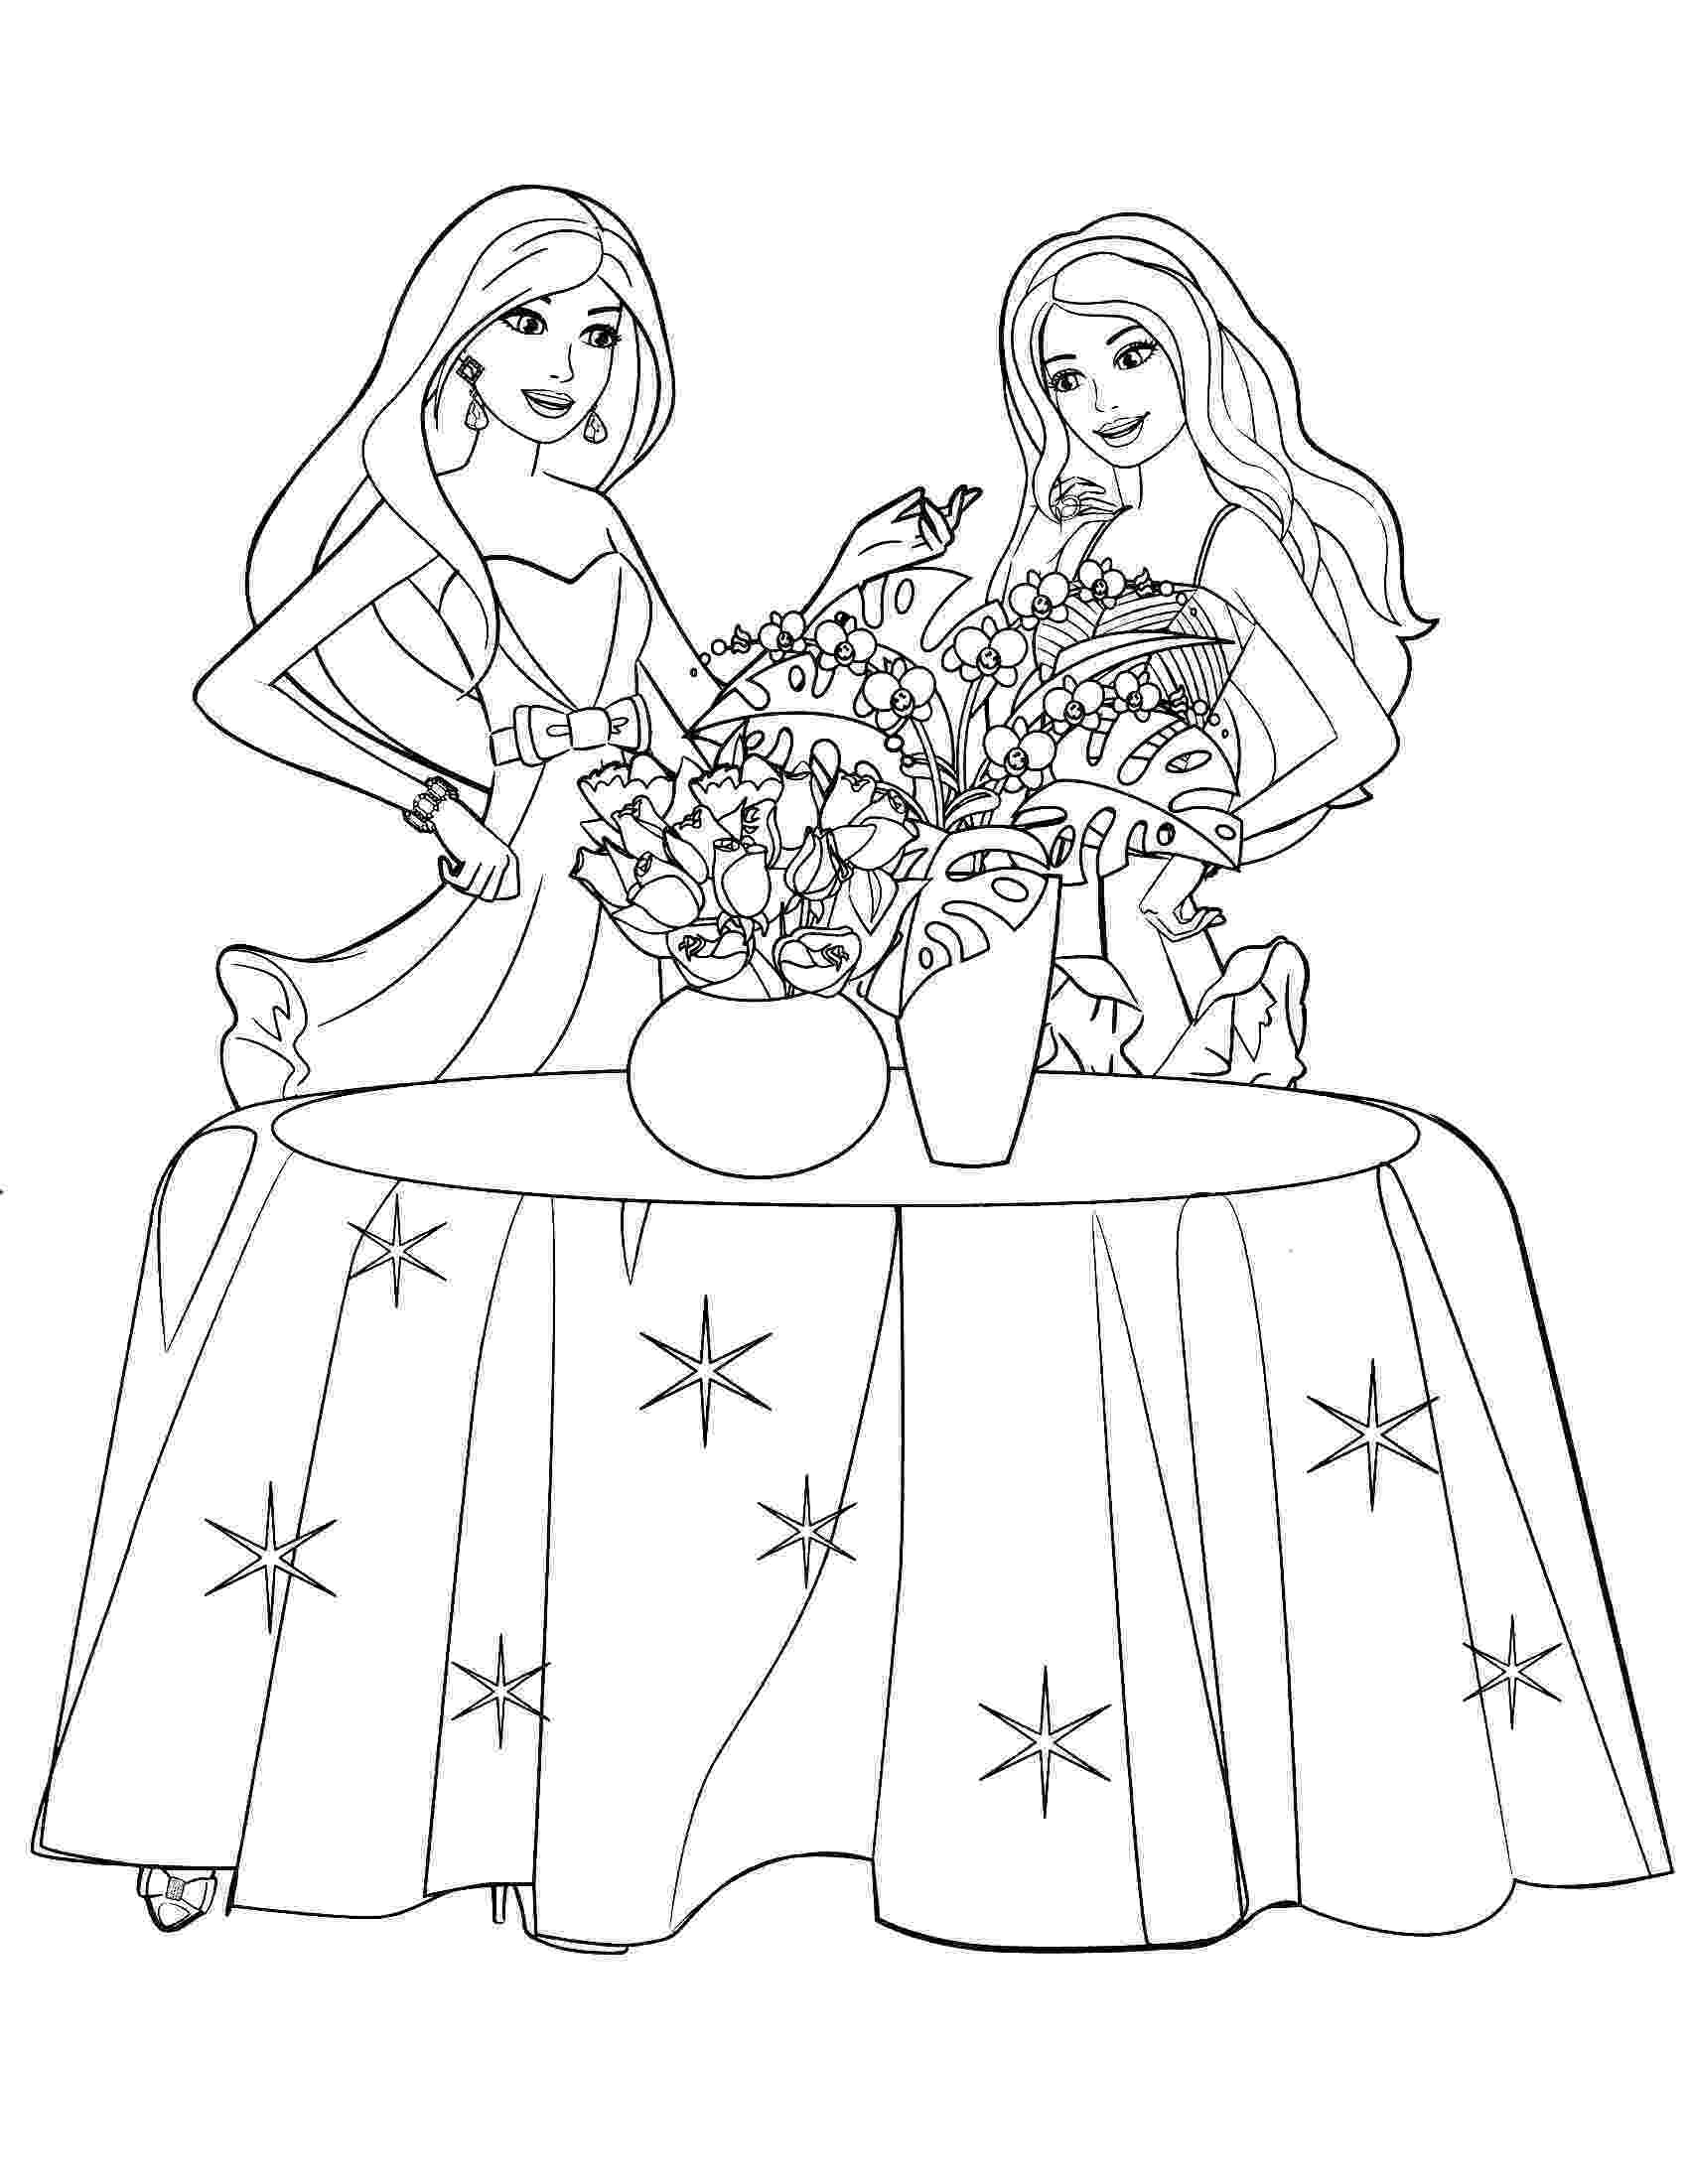 barbie pictures to color games barbie coloring pages games at getcoloringscom free barbie pictures color to games